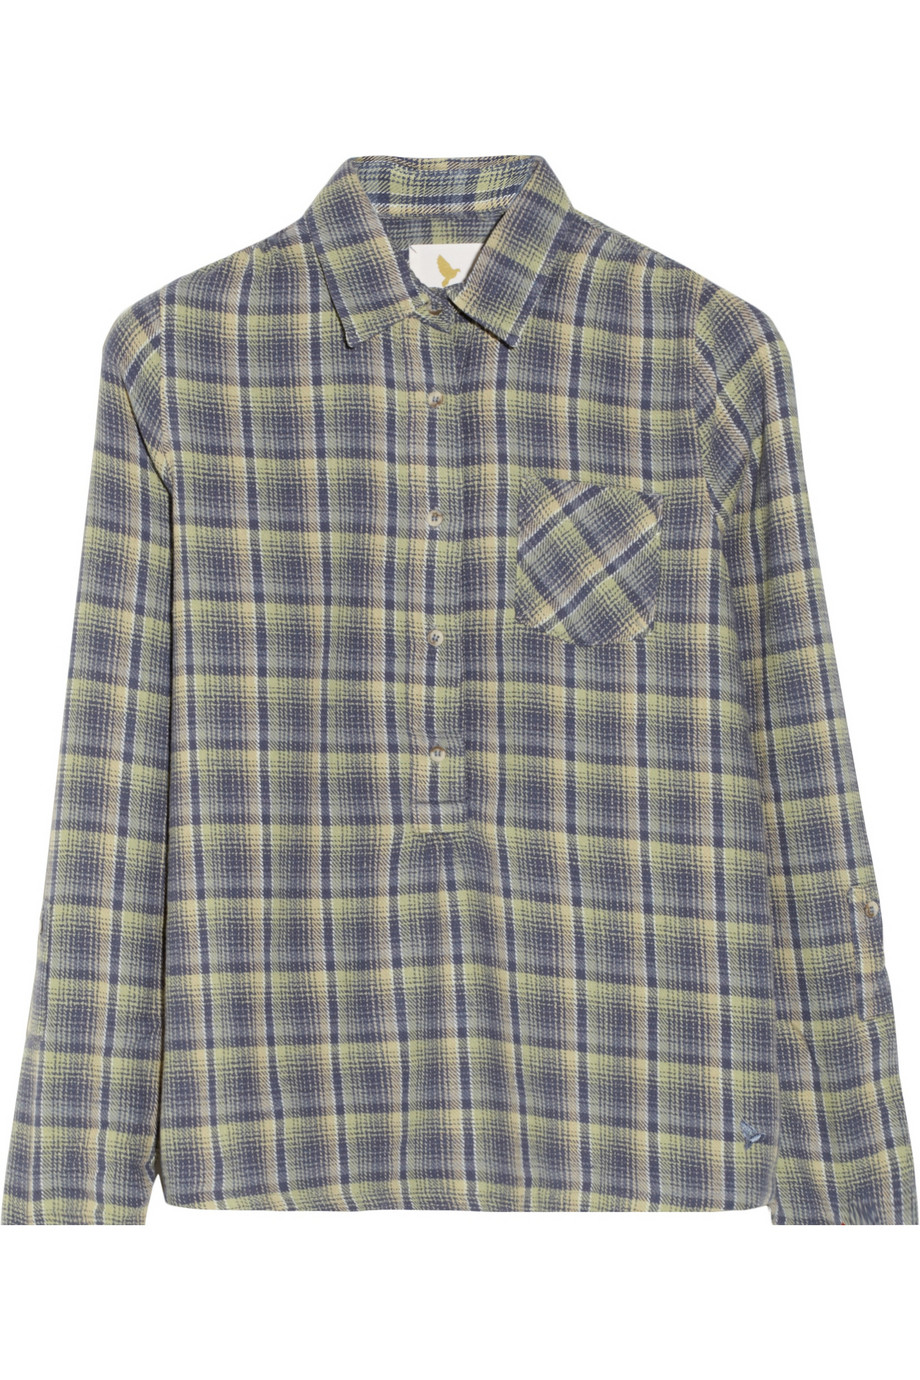 MIH jeans paid cotton pull on shirt £80